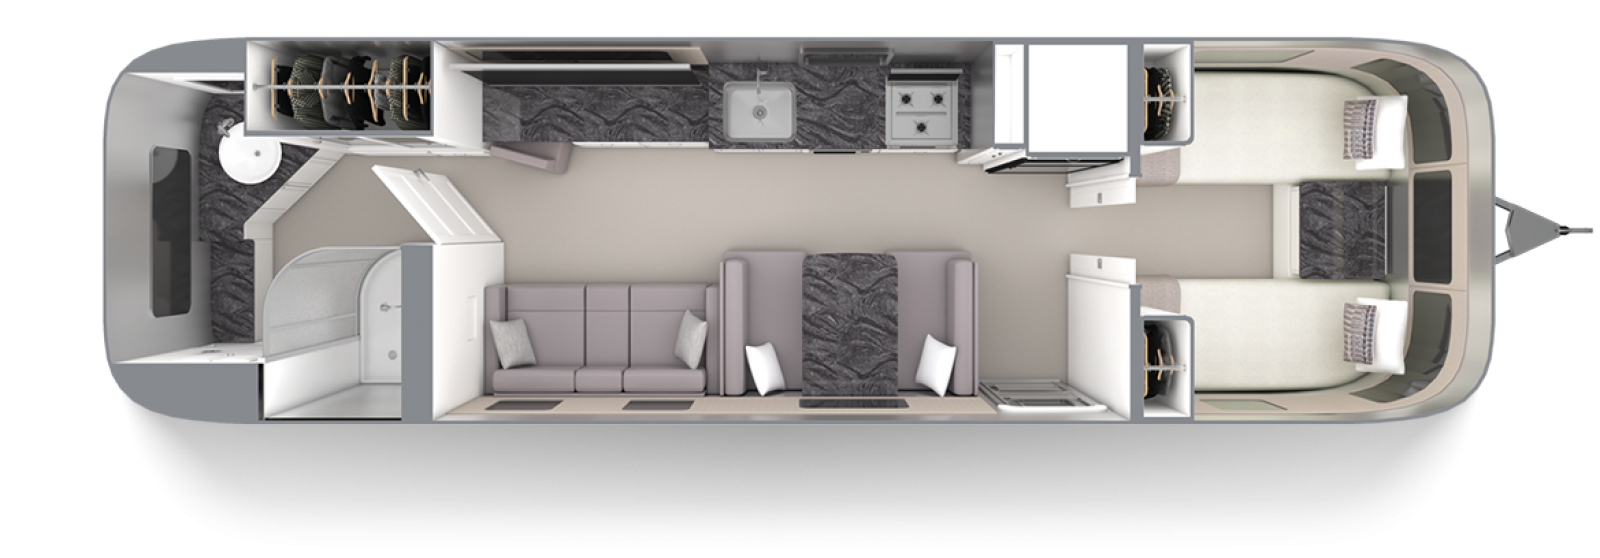 Airstream-Classic-33FB-Twin-Comfort-White-Earl-Grey-Floor-Plan